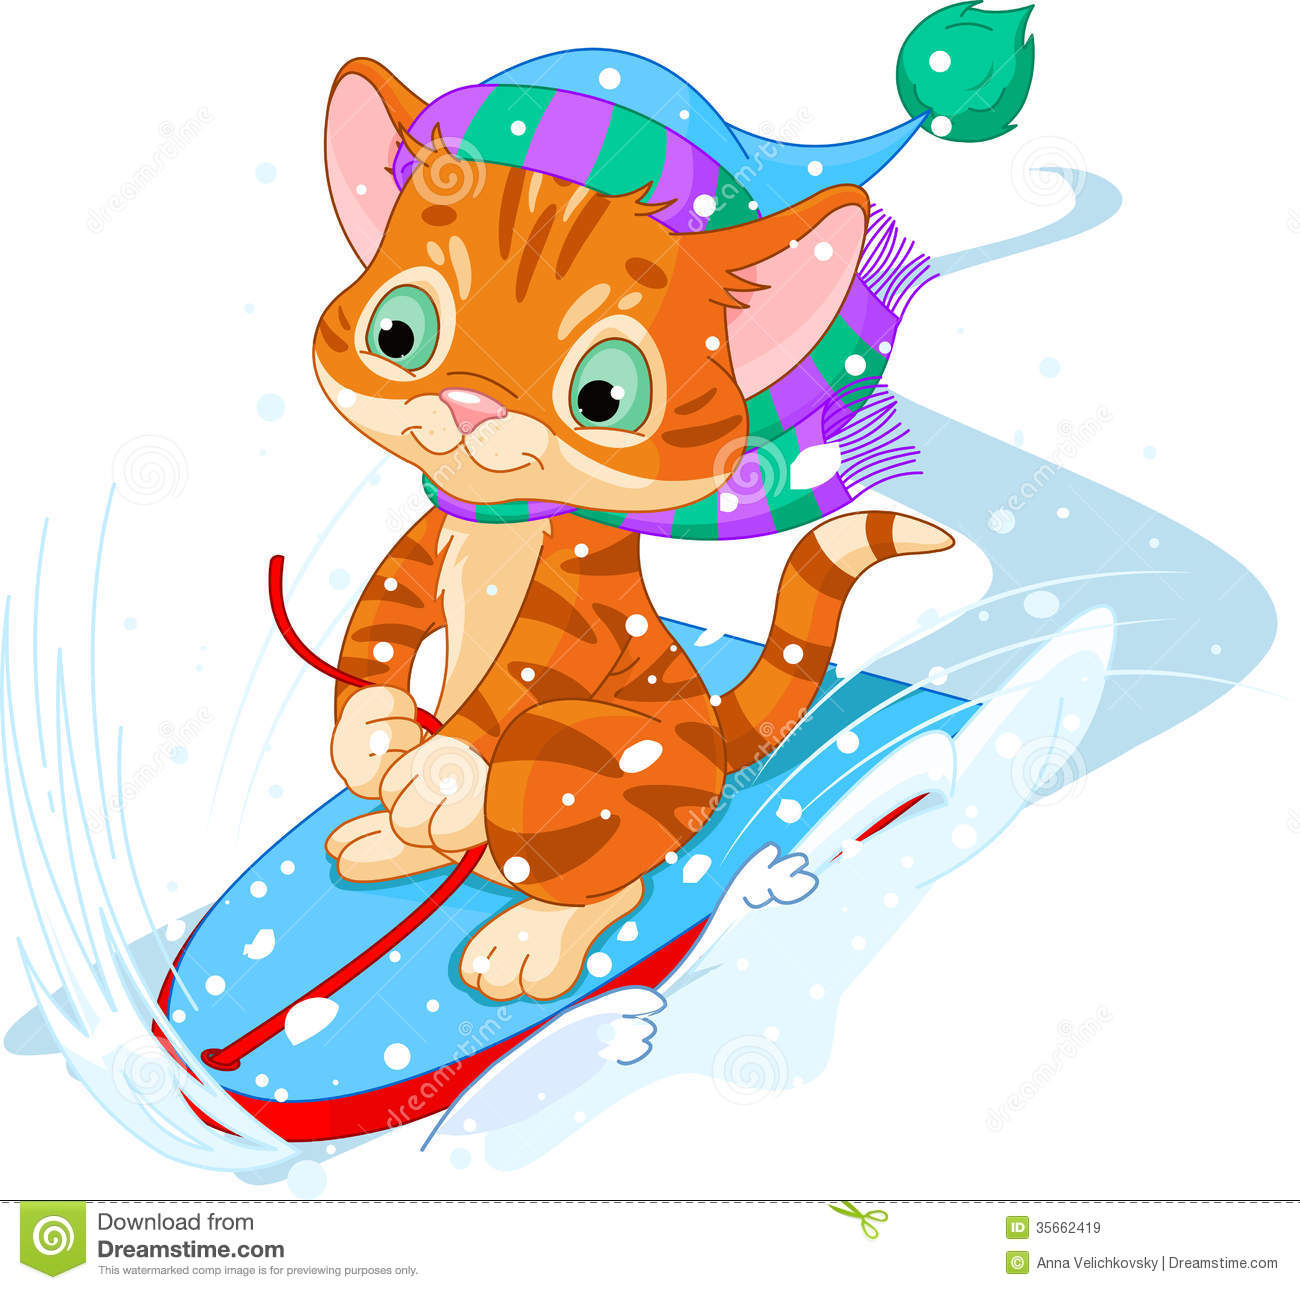 Fast Fun Kitten Royalty Free Stock Images - Image: 35662419